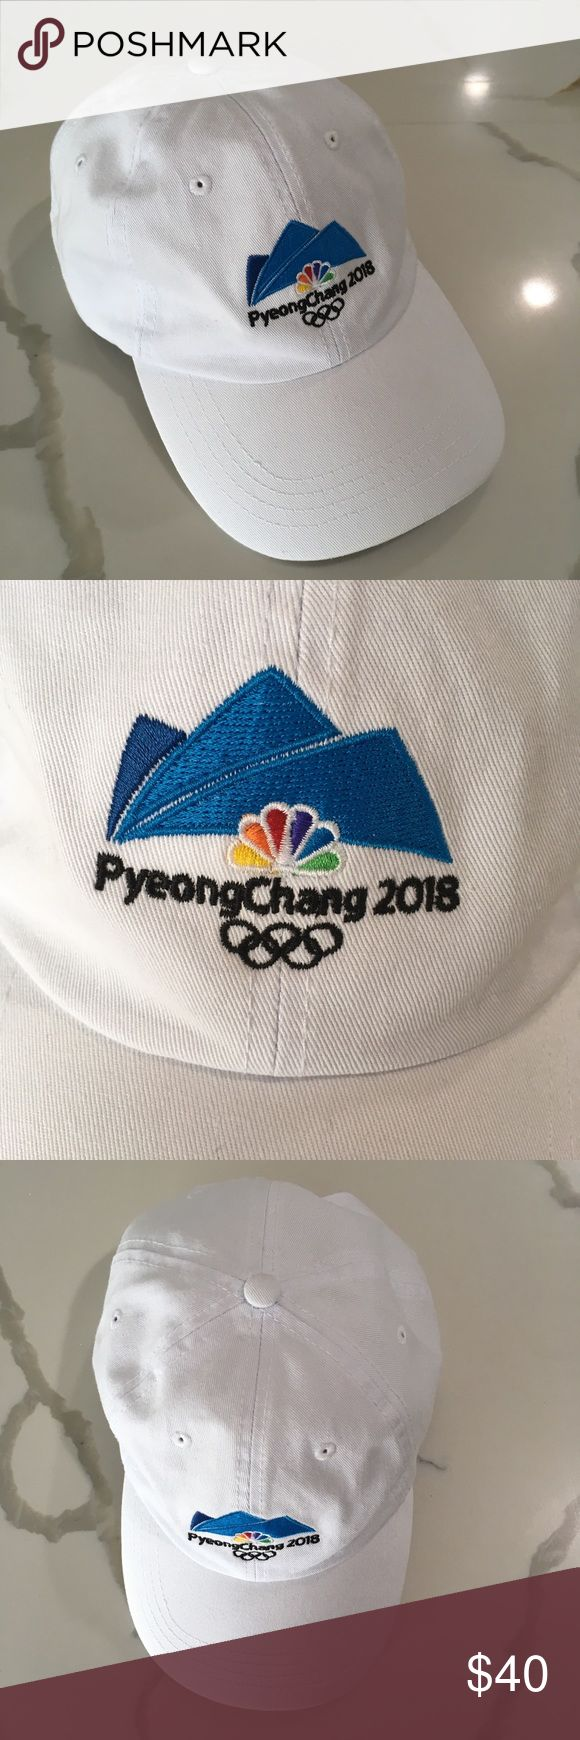 Pyeong Chang 2018 USA Olympic team apparel hat PYEONG CHANG ~   Olympics 2018  Pyeong Chang Olympic team hat USA Olympic team apparel  White dad hat  Adjustable strap  New with tags usa Accessories Hats